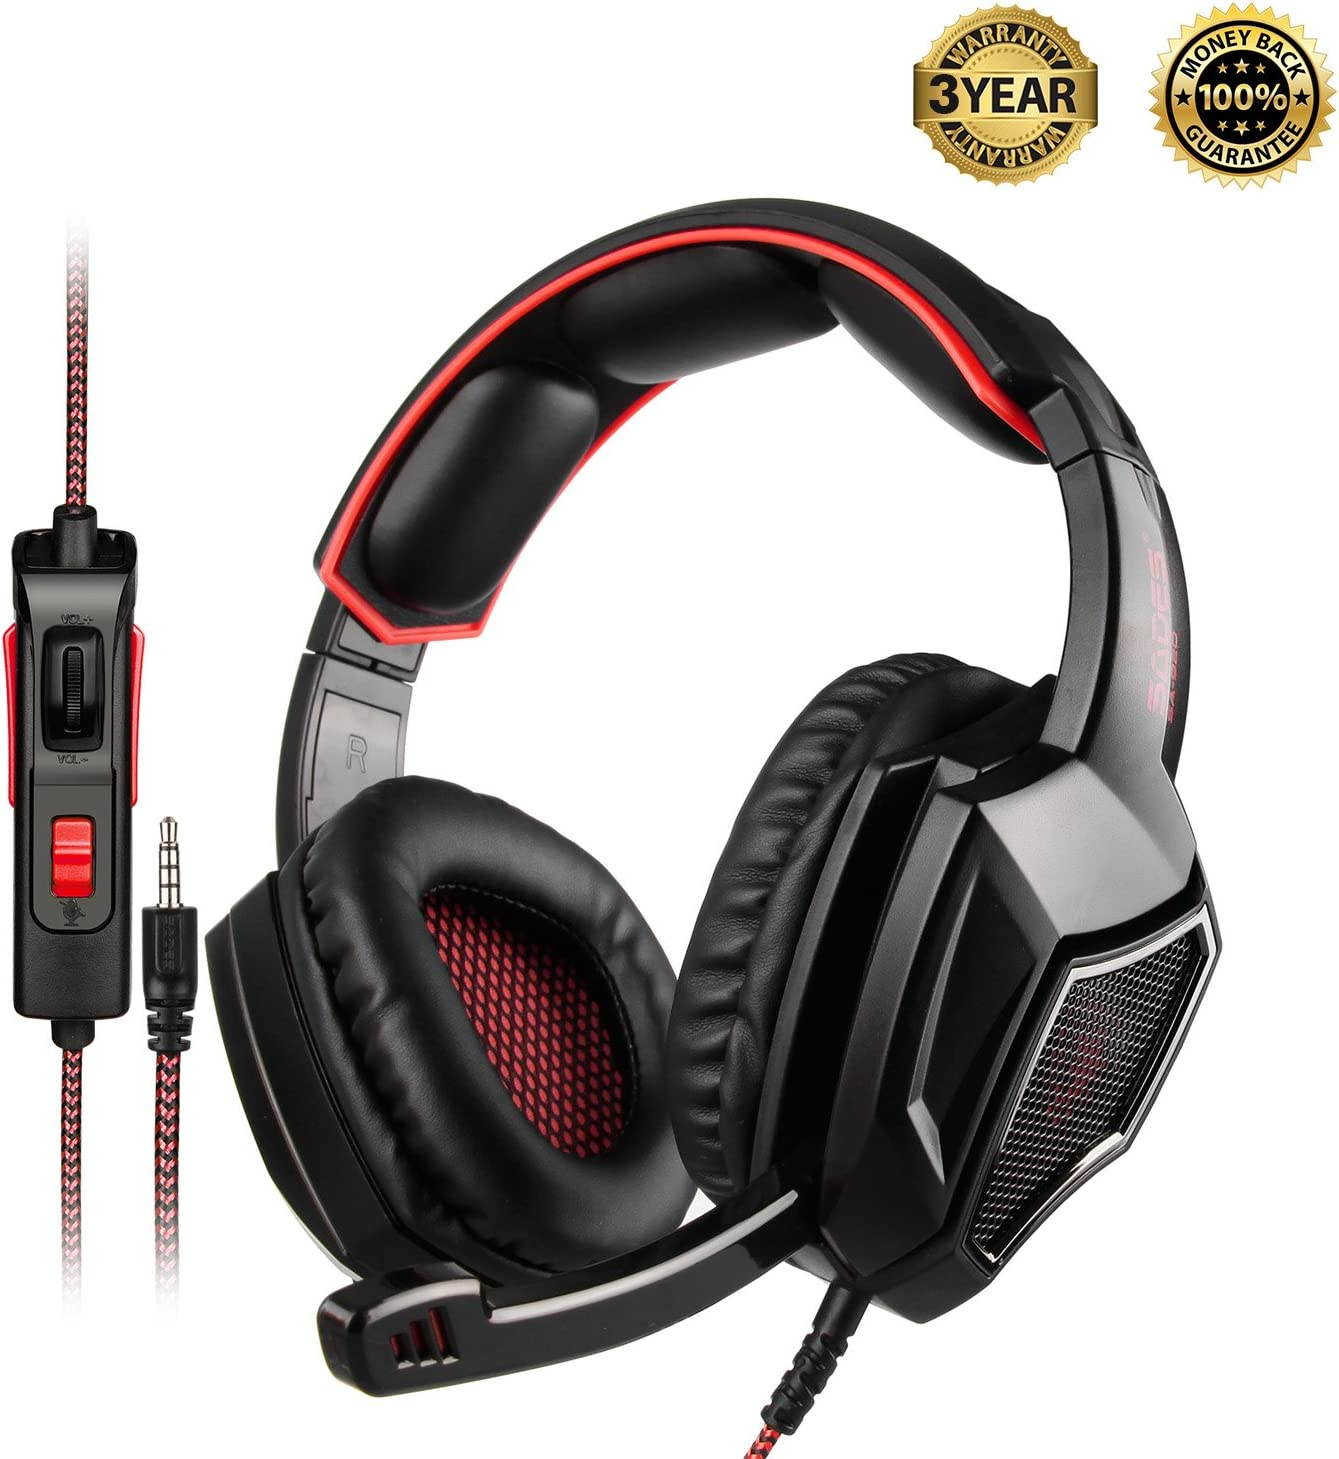 SADES SA920PLUS Stereo Gaming Headset for PS4, PC, Xbox One Controller, Noise Cancelling Over Ear Headphones with Mic, Bass Surround, Soft Memory Earmuffs for Laptop Mac Nintendo Switch Black Red